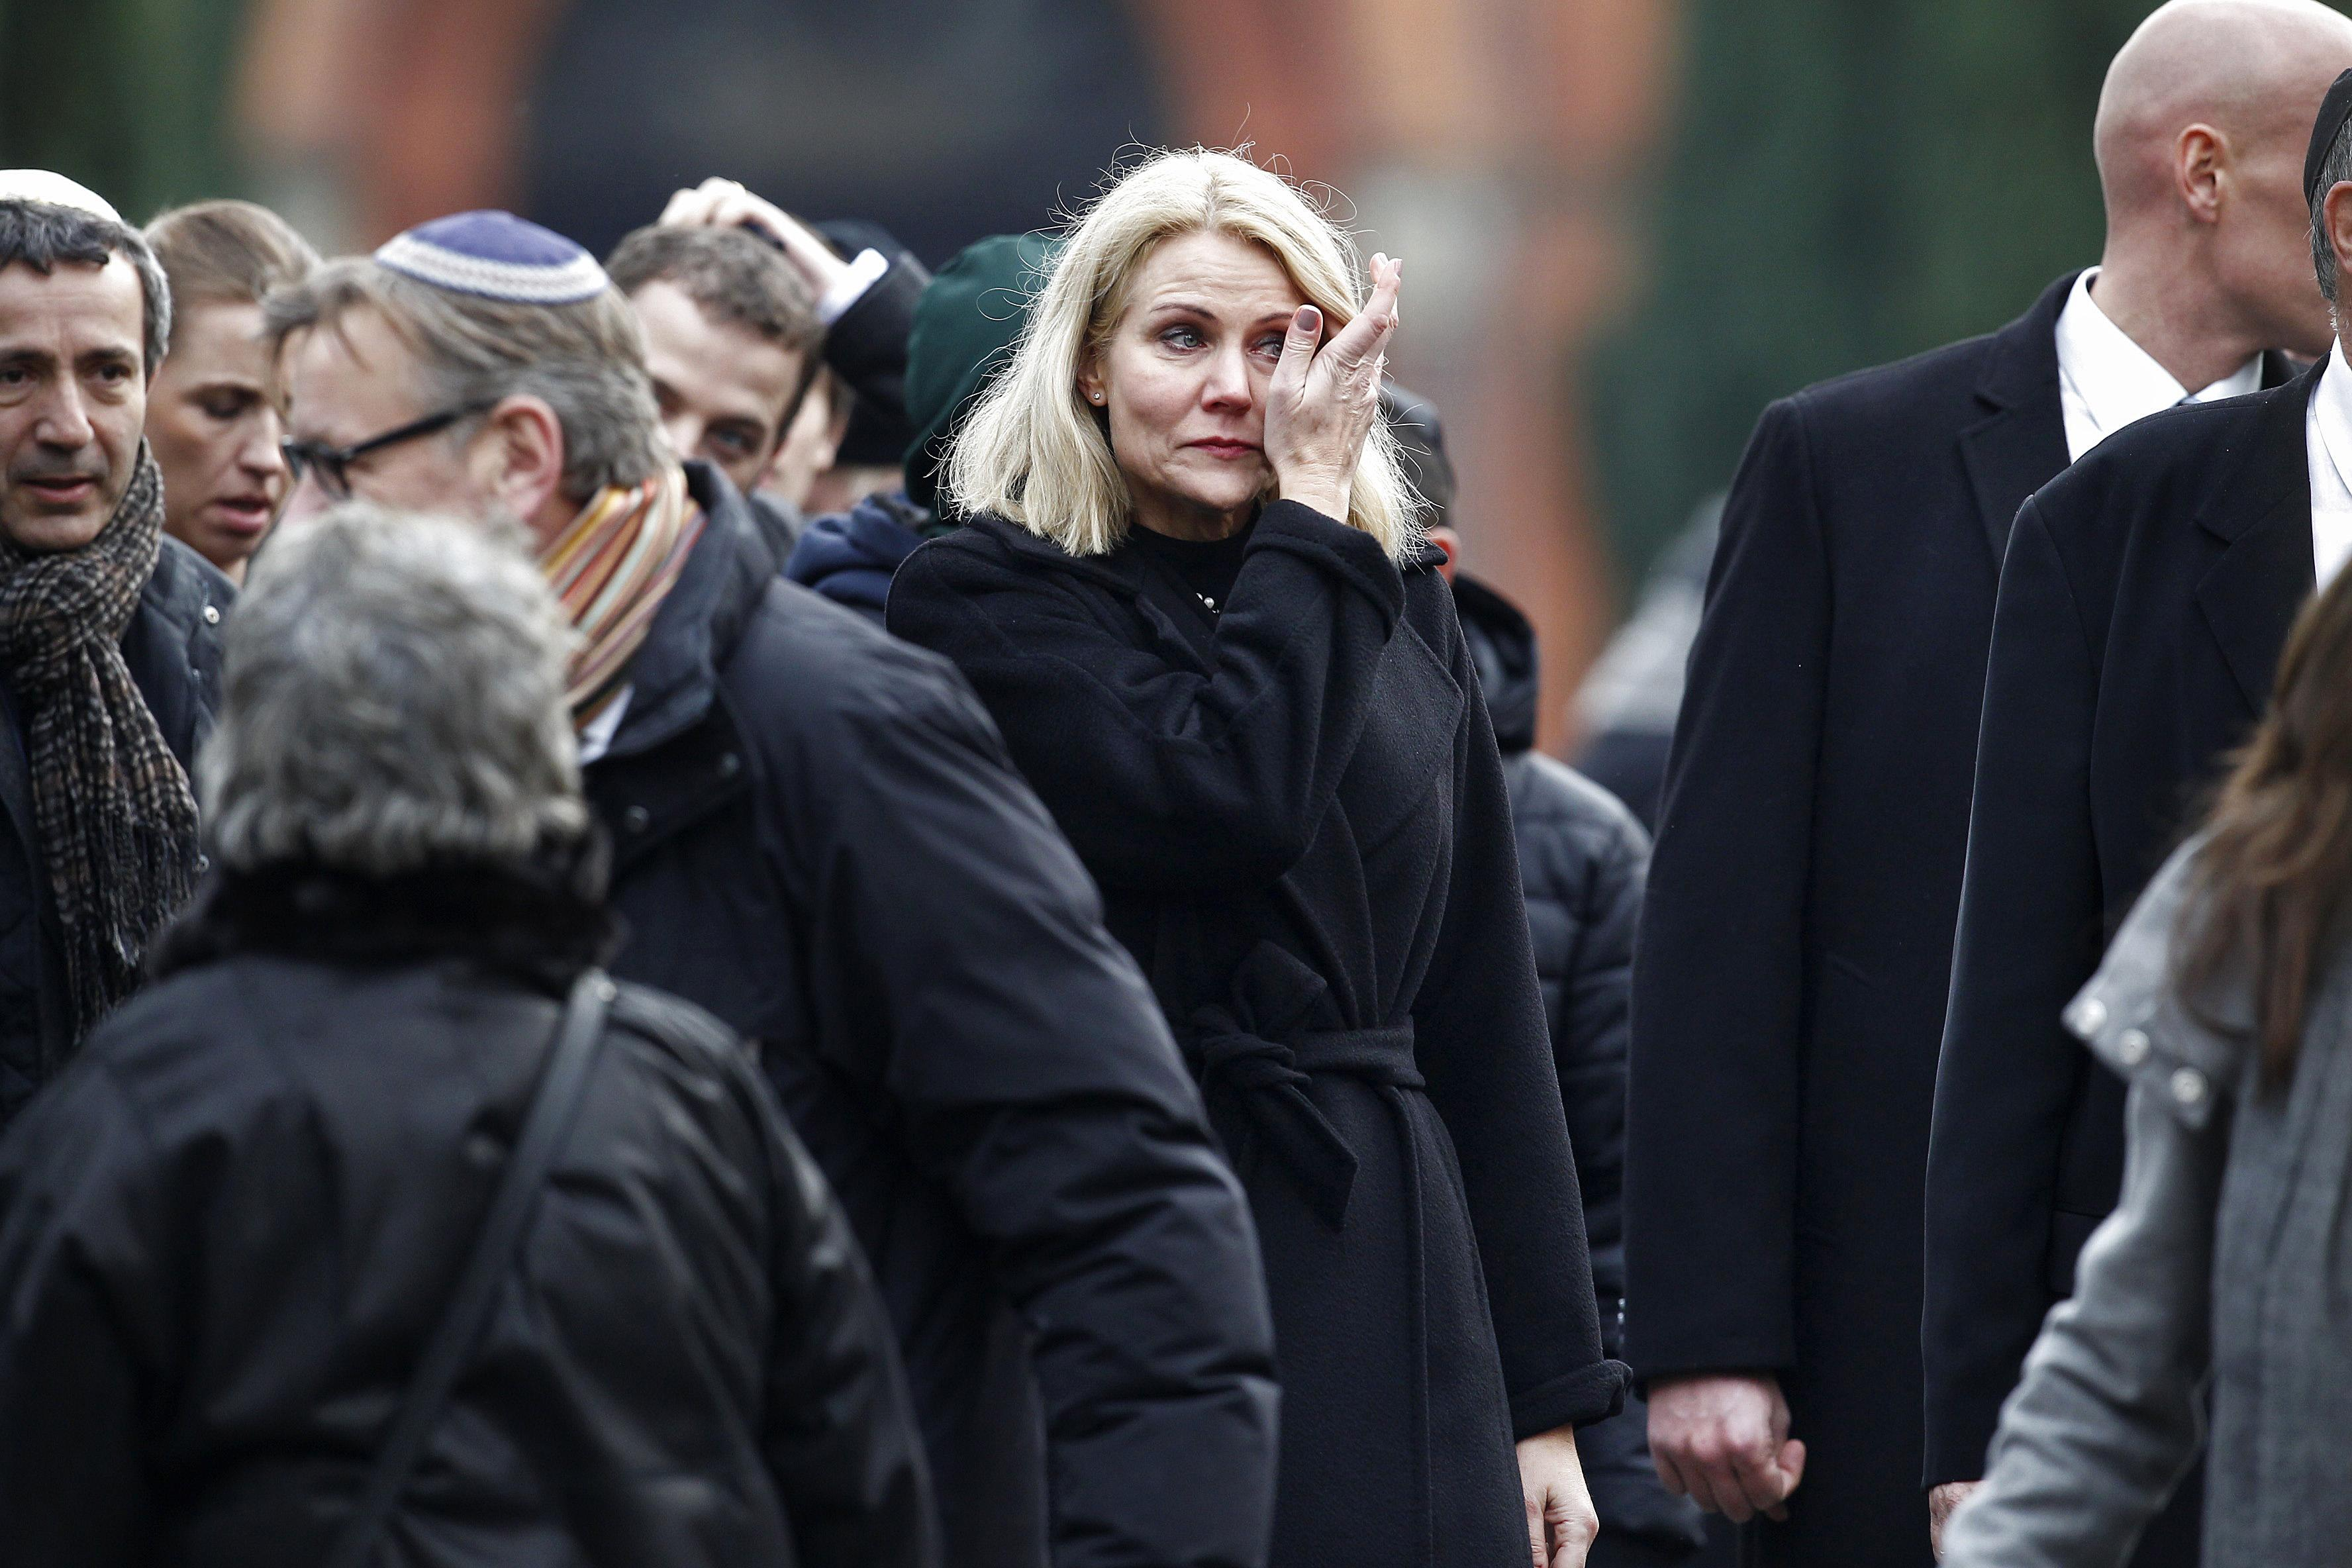 Danish Prime Minister Helle Thorning-Schmidt (C) attends the burial of Dan Uzan, a Jewish victim of the February 15, 2015 attacks, at the Vestre Kirkegaard cemetery in Copenhagen on February 18, 2015 (AFP Photo/Bax Lindhardt)